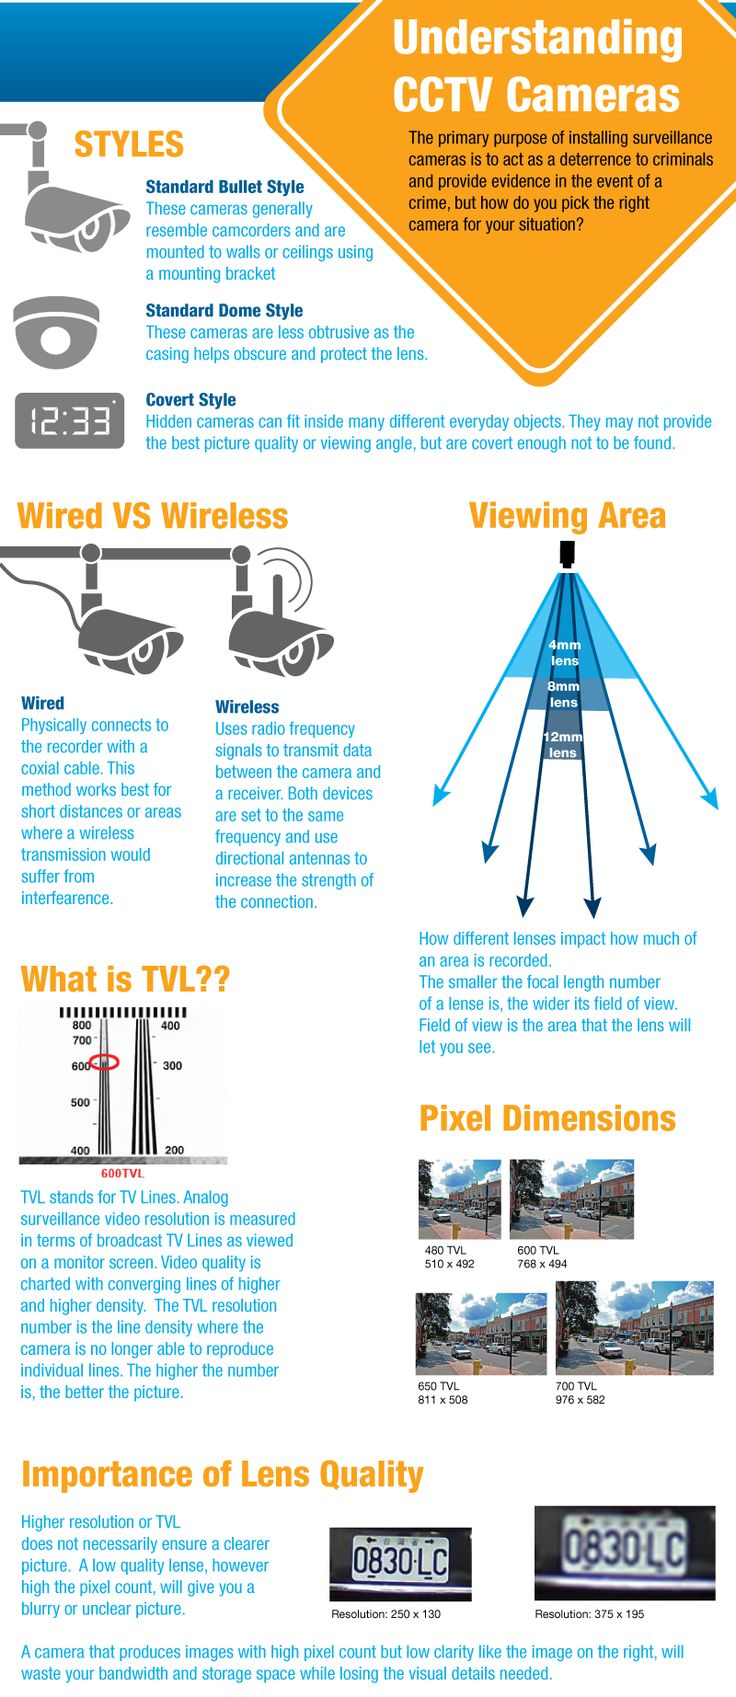 Understanding CCTV Cameras, available for purchase at www.homecontrols....